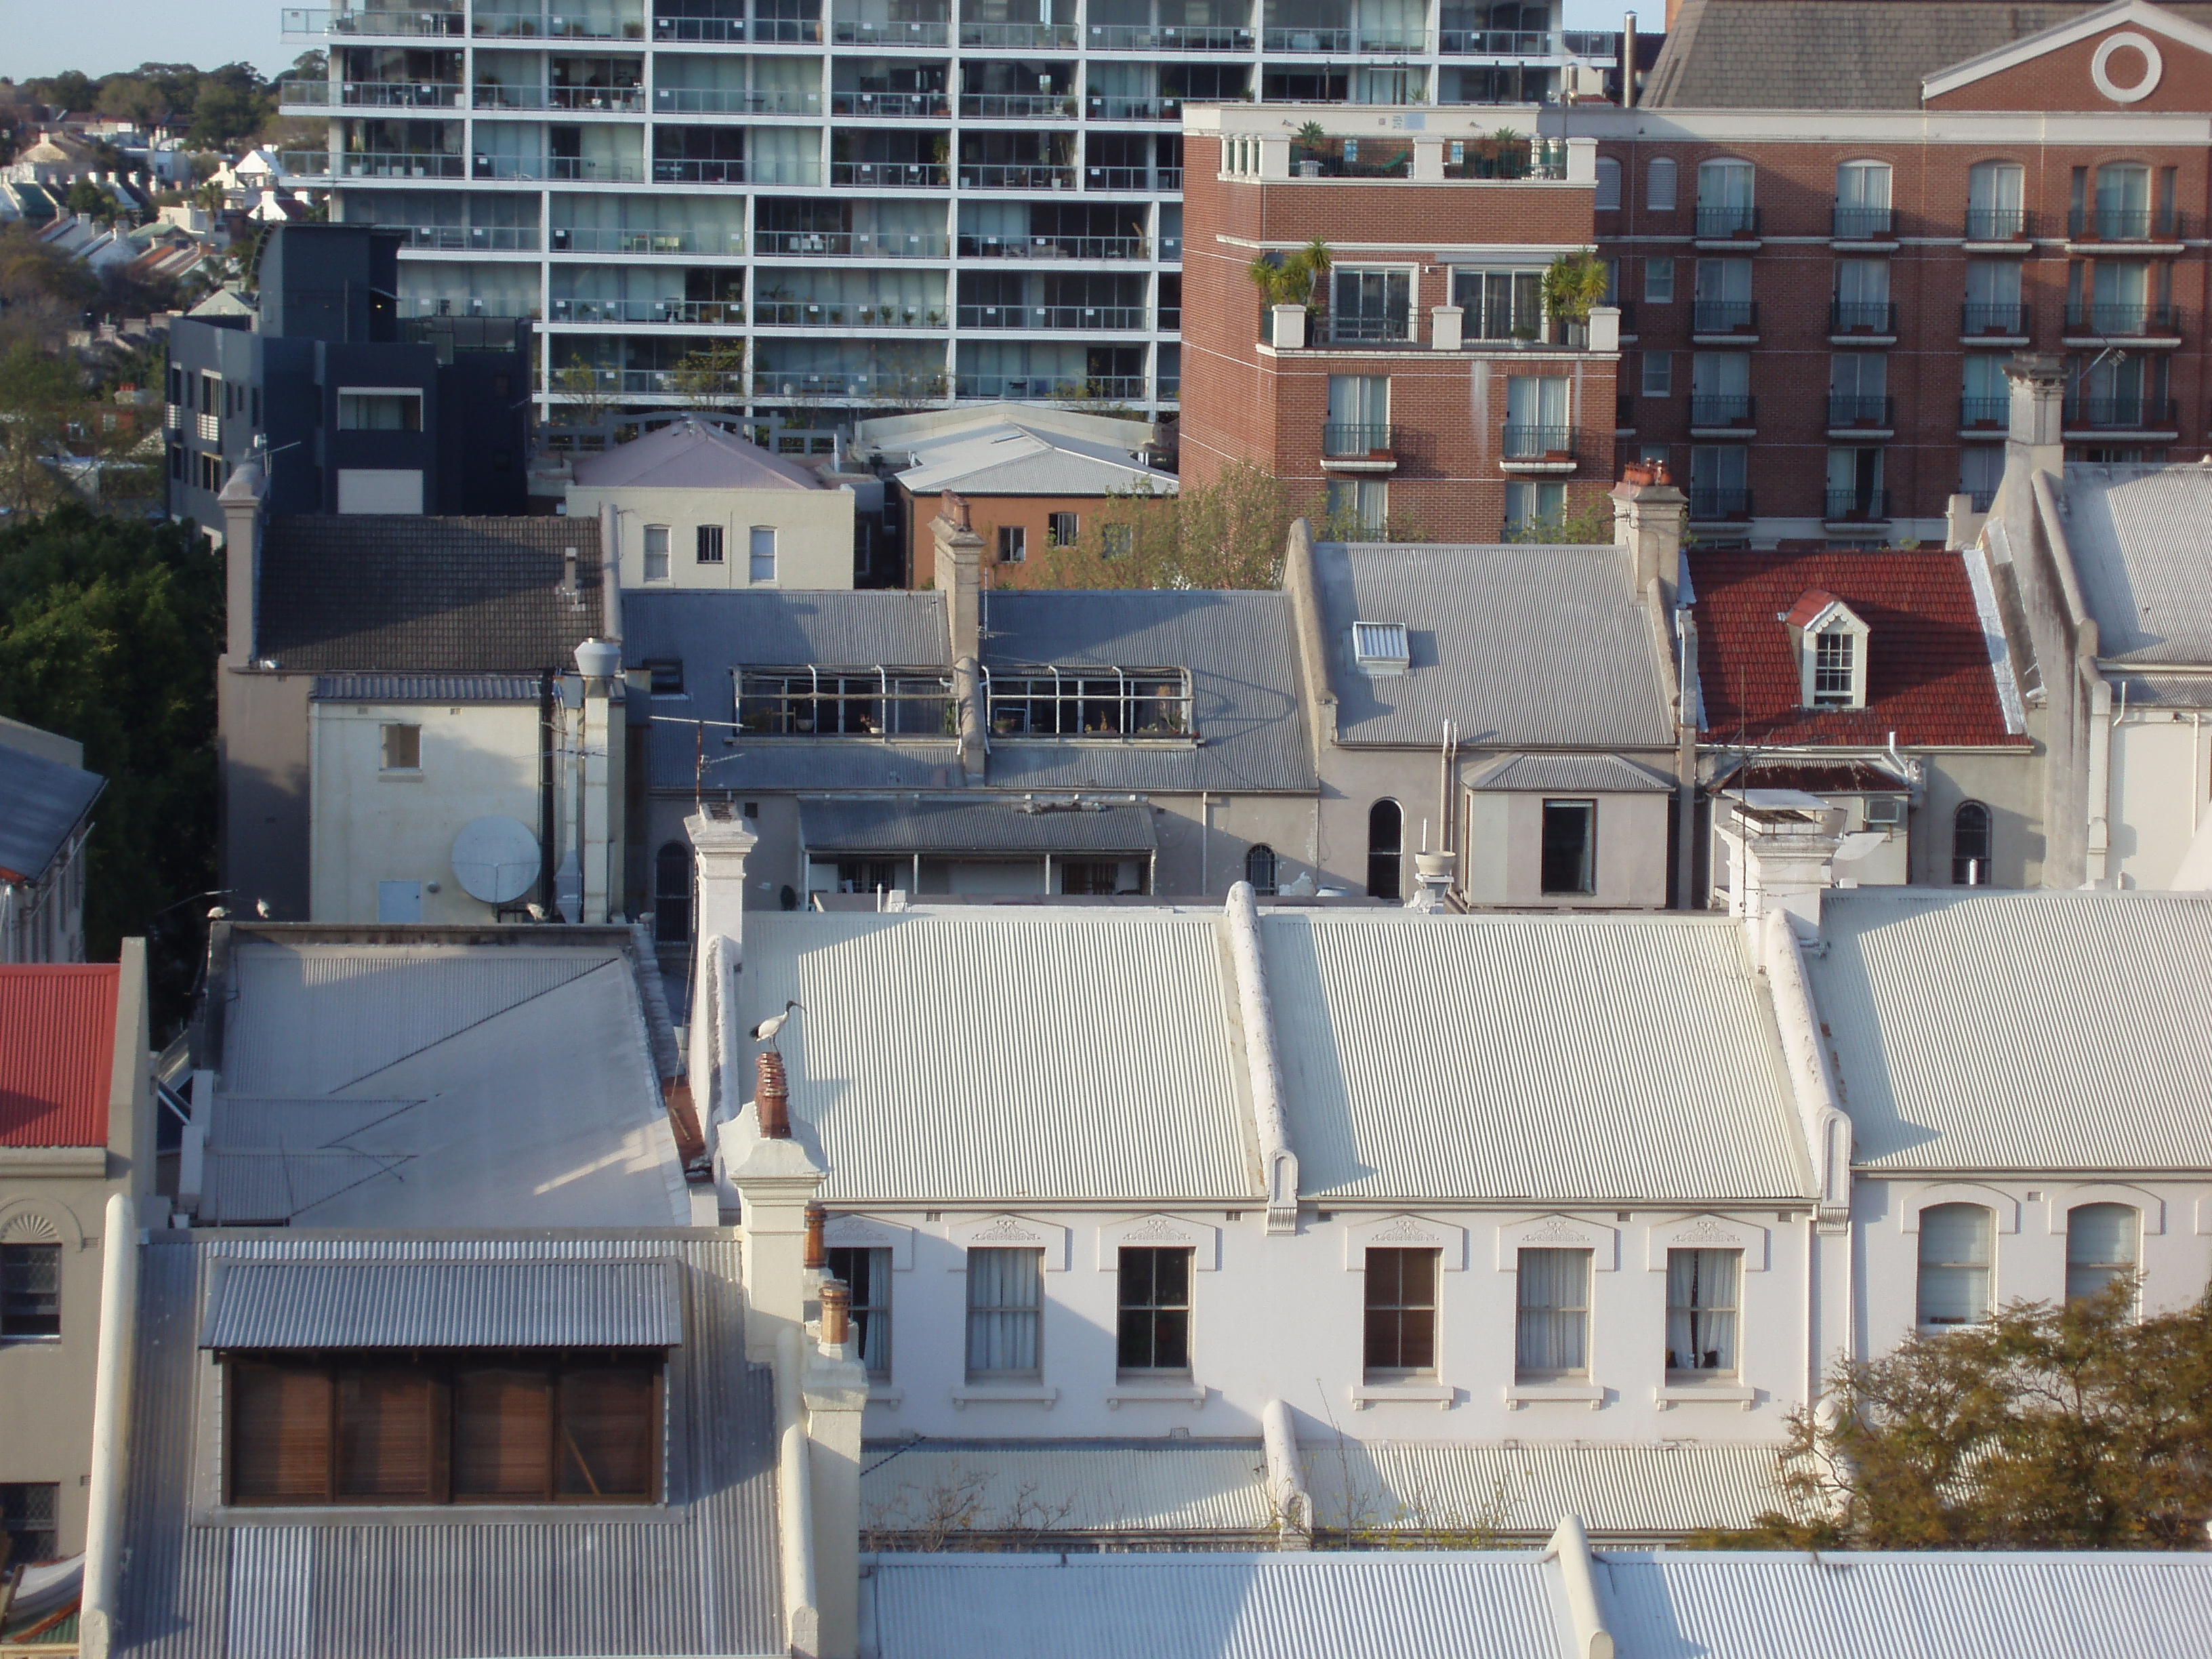 various types of building in a city taken from a elevated location